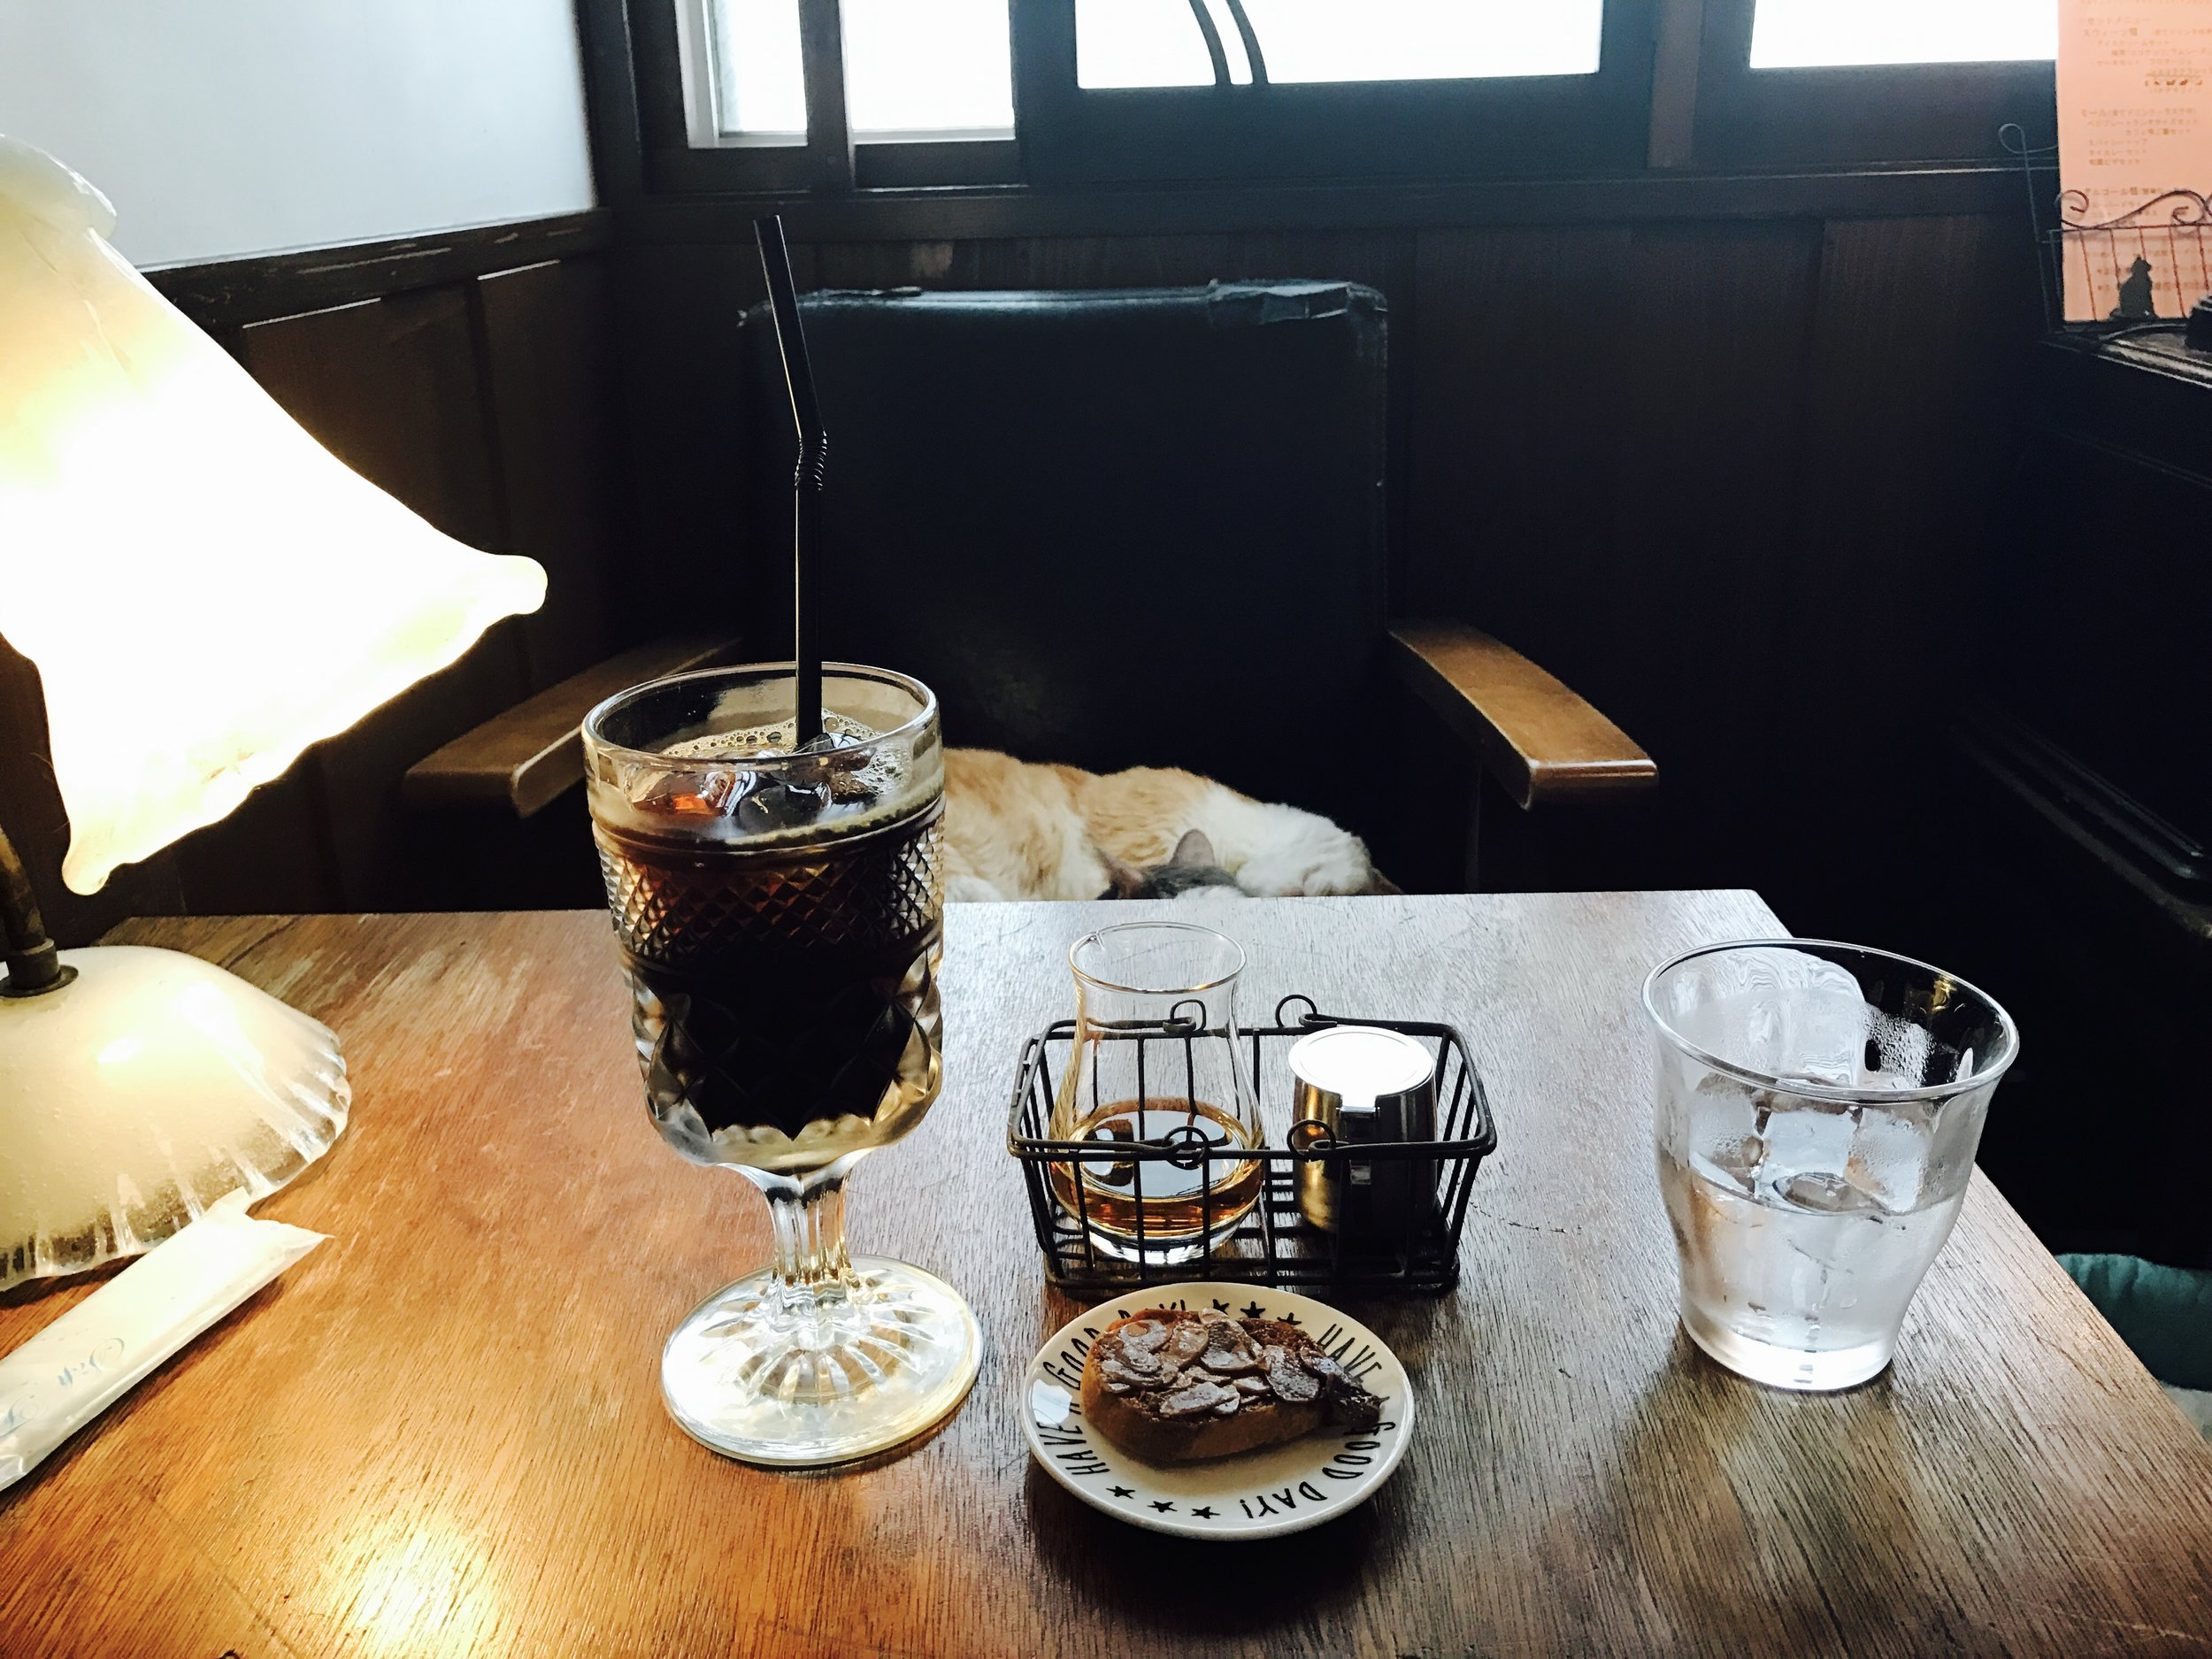 Cloud Nine serves cafe-style beverages, a step up in quality from the average Japanese cat cafe